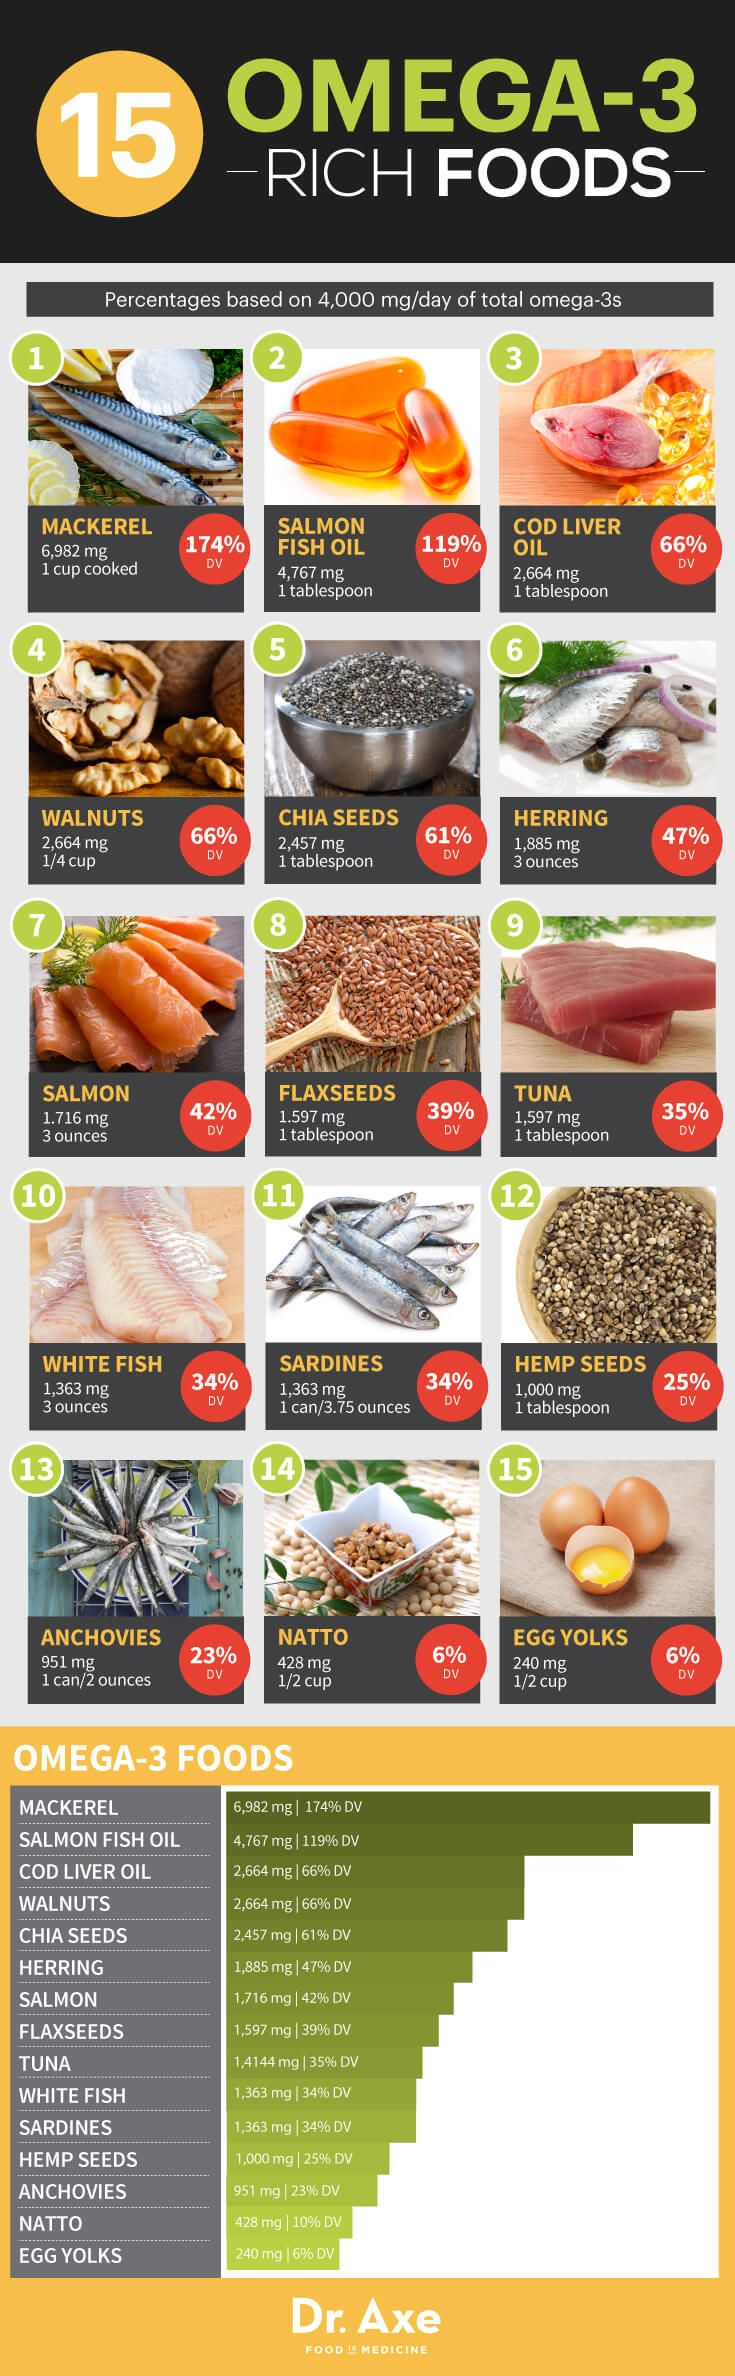 Farm fish usually contains high concentrations of antibiotics, pesticides and lower levels of healthy nutrients like vitamin D.